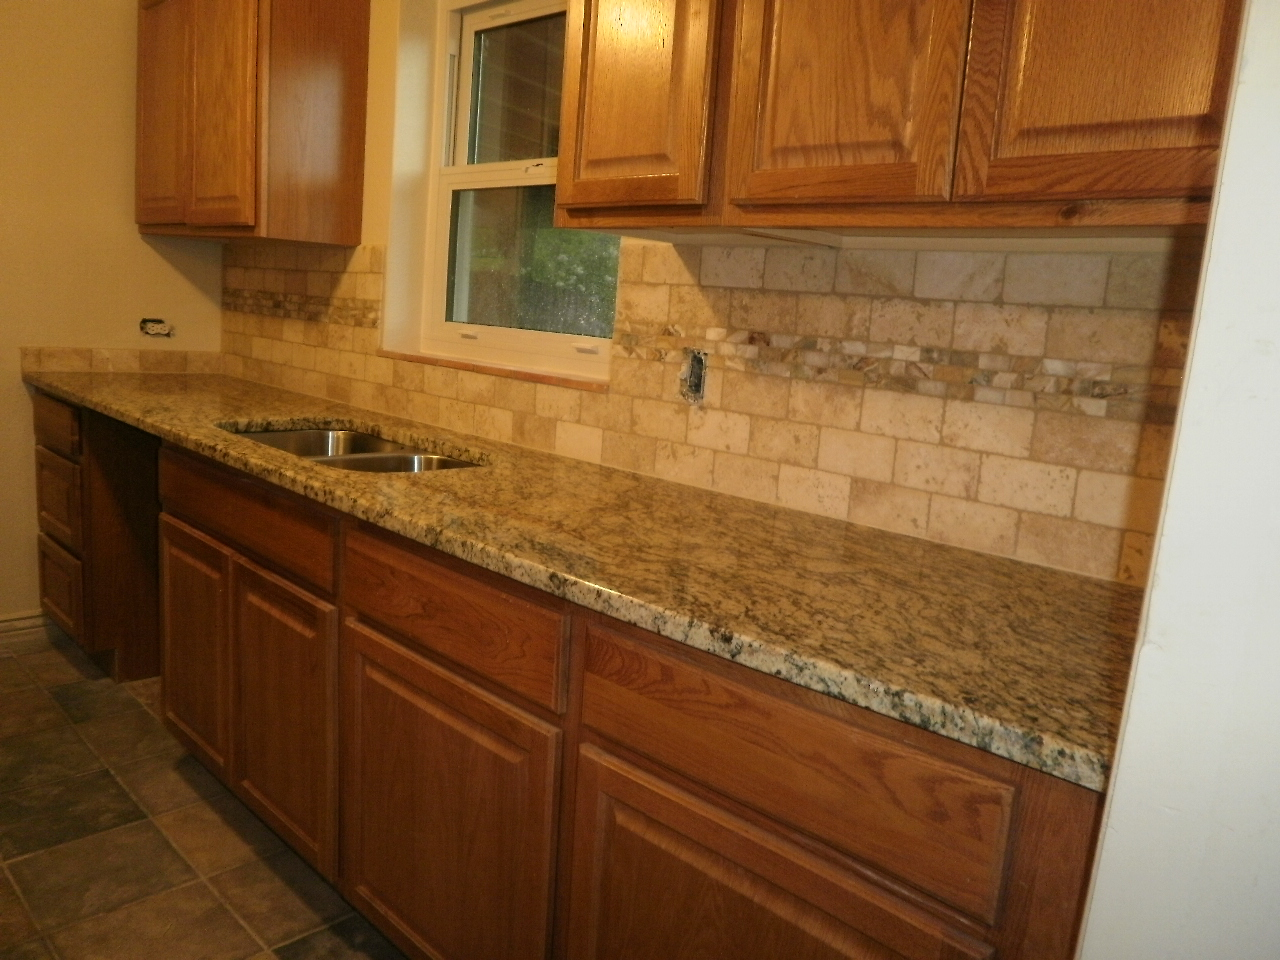 Santa cecilia granite backsplash ideas for Bathroom backsplash ideas